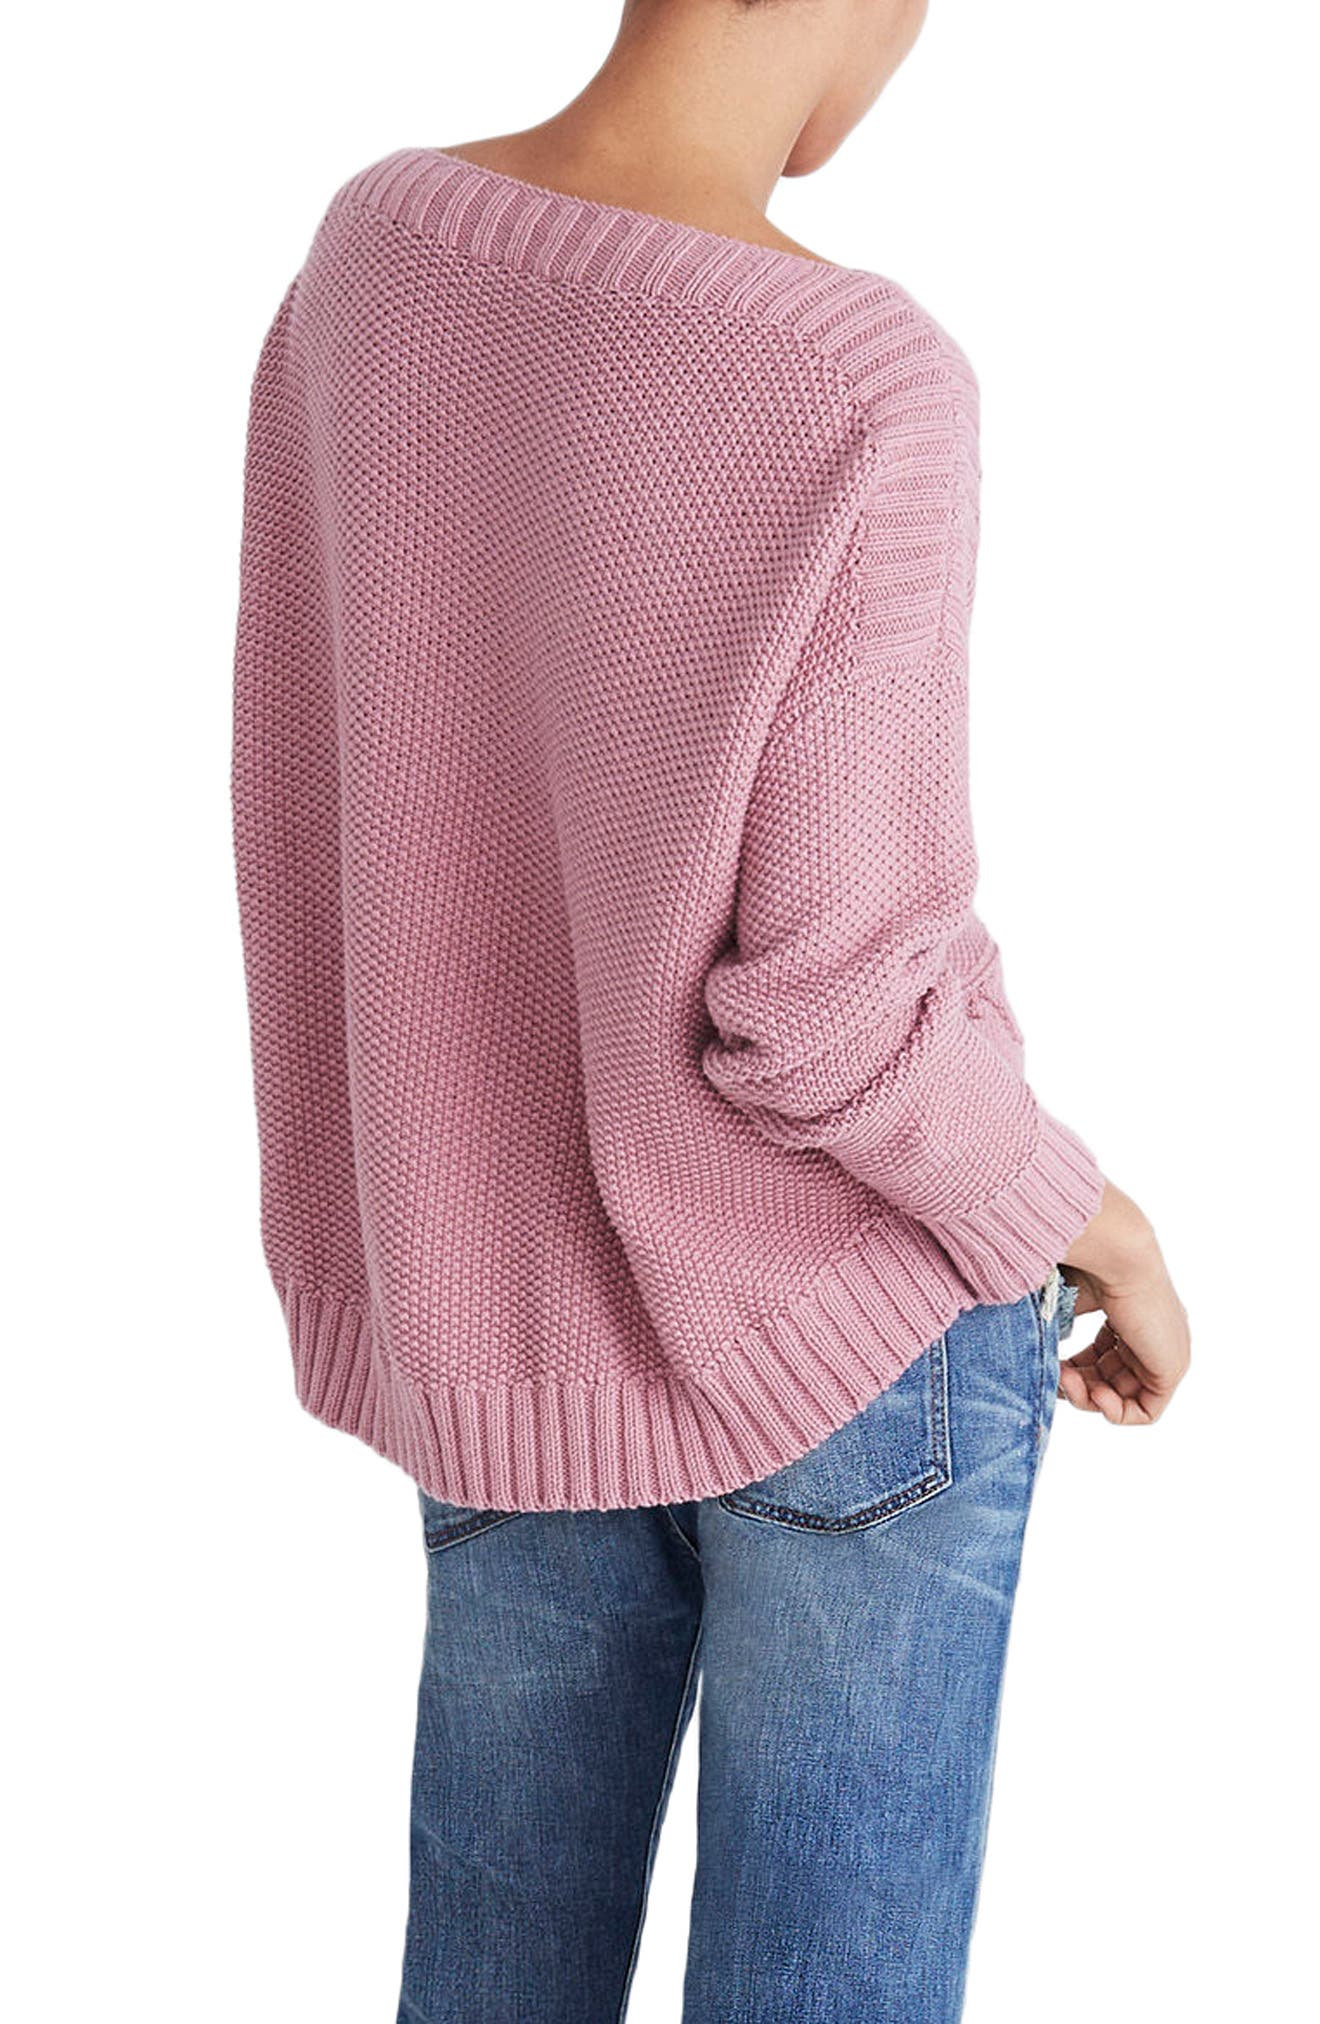 Zigzag Stitch Pullover Sweater,                             Alternate thumbnail 2, color,                             650